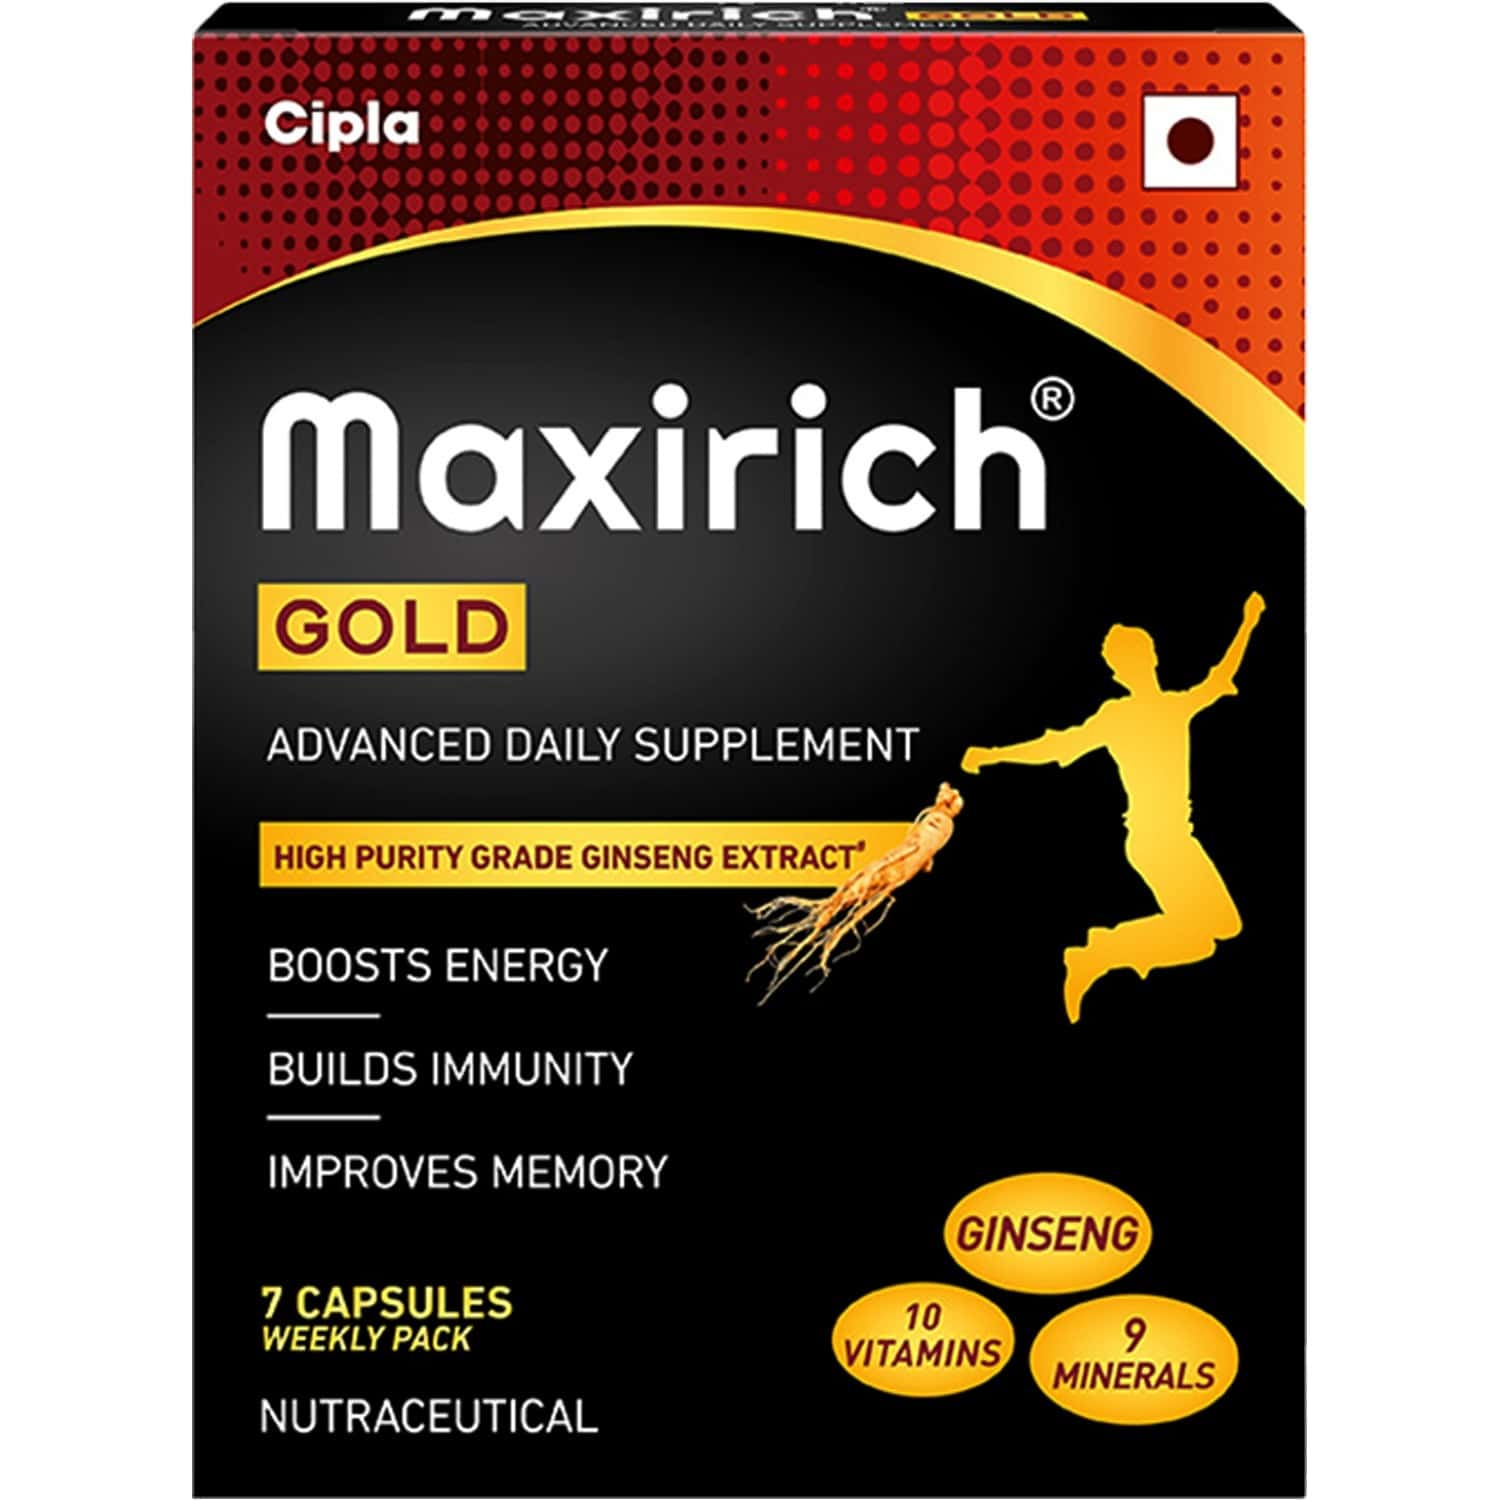 Maxirich Gold Advanced Daily Supplement (7 Capsules)